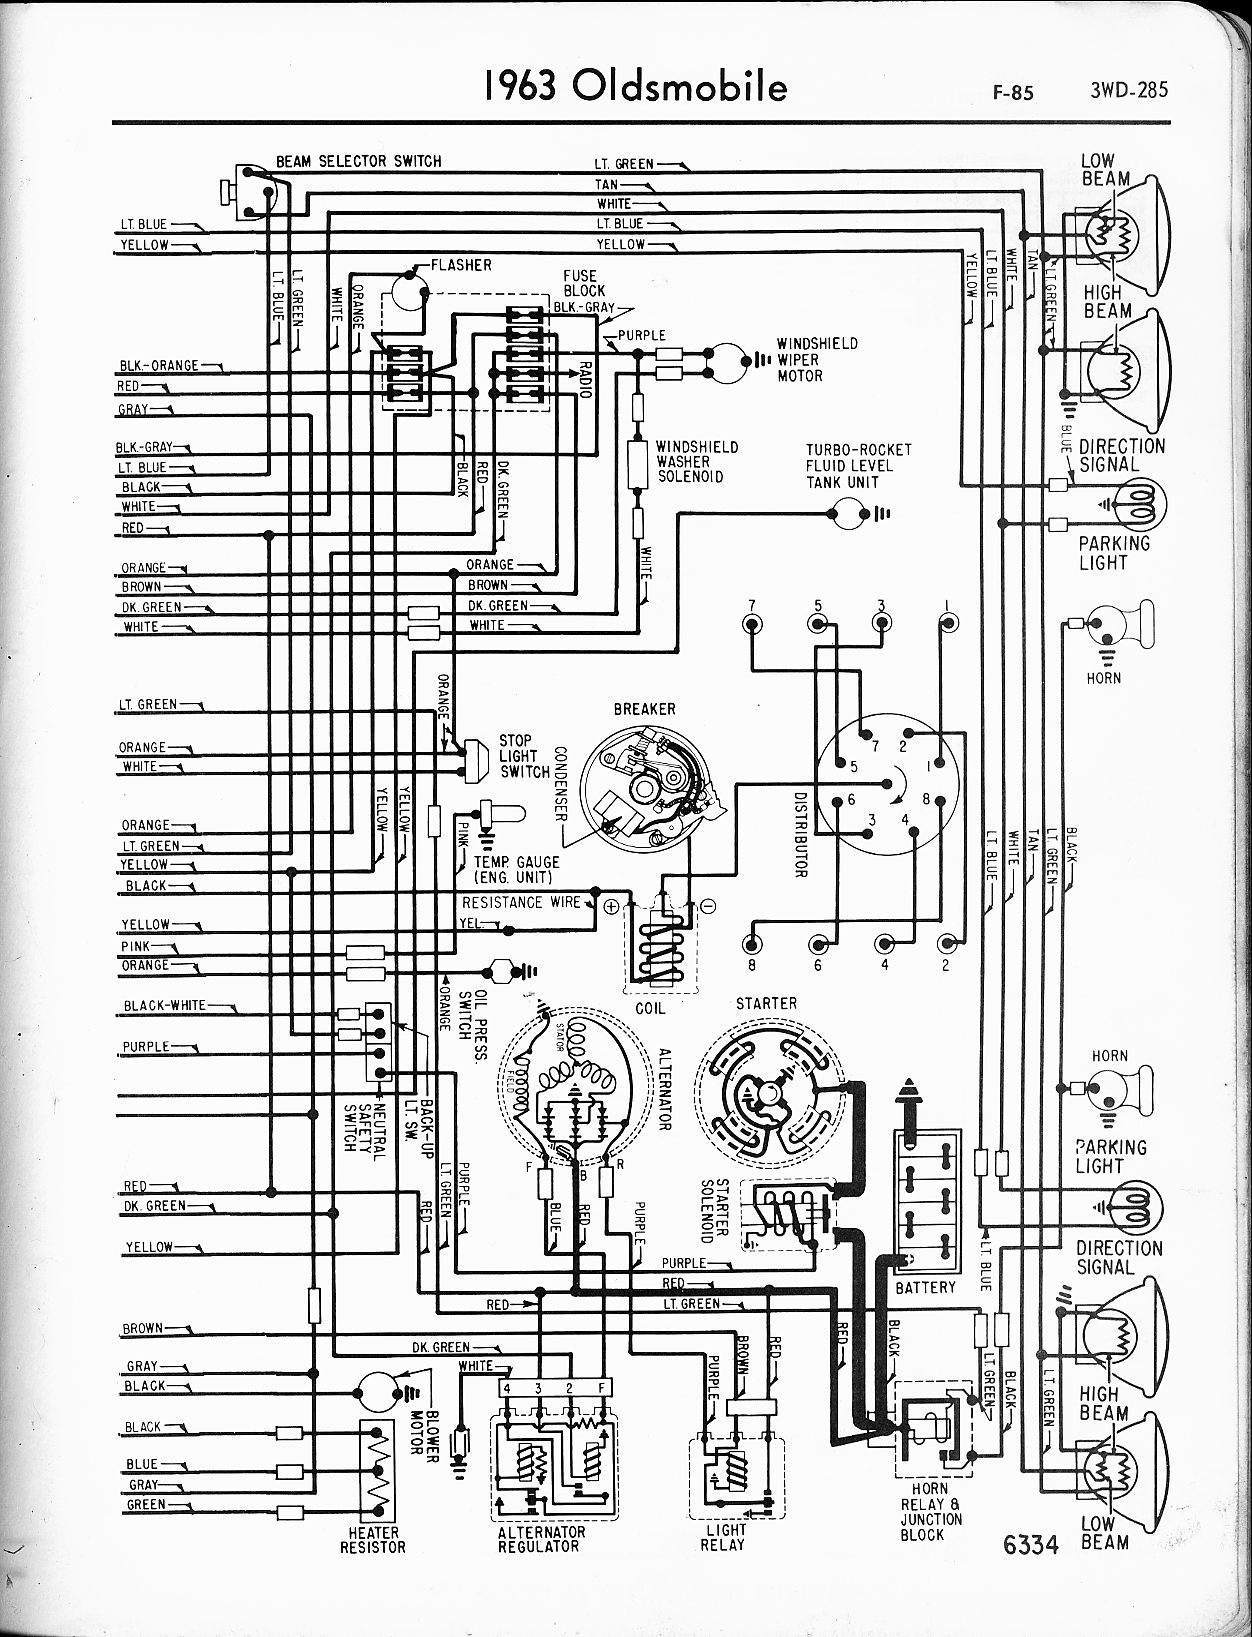 MWire5765 285 oldsmobile wiring diagrams the old car manual project 2000 oldsmobile silhouette wiring diagram at creativeand.co